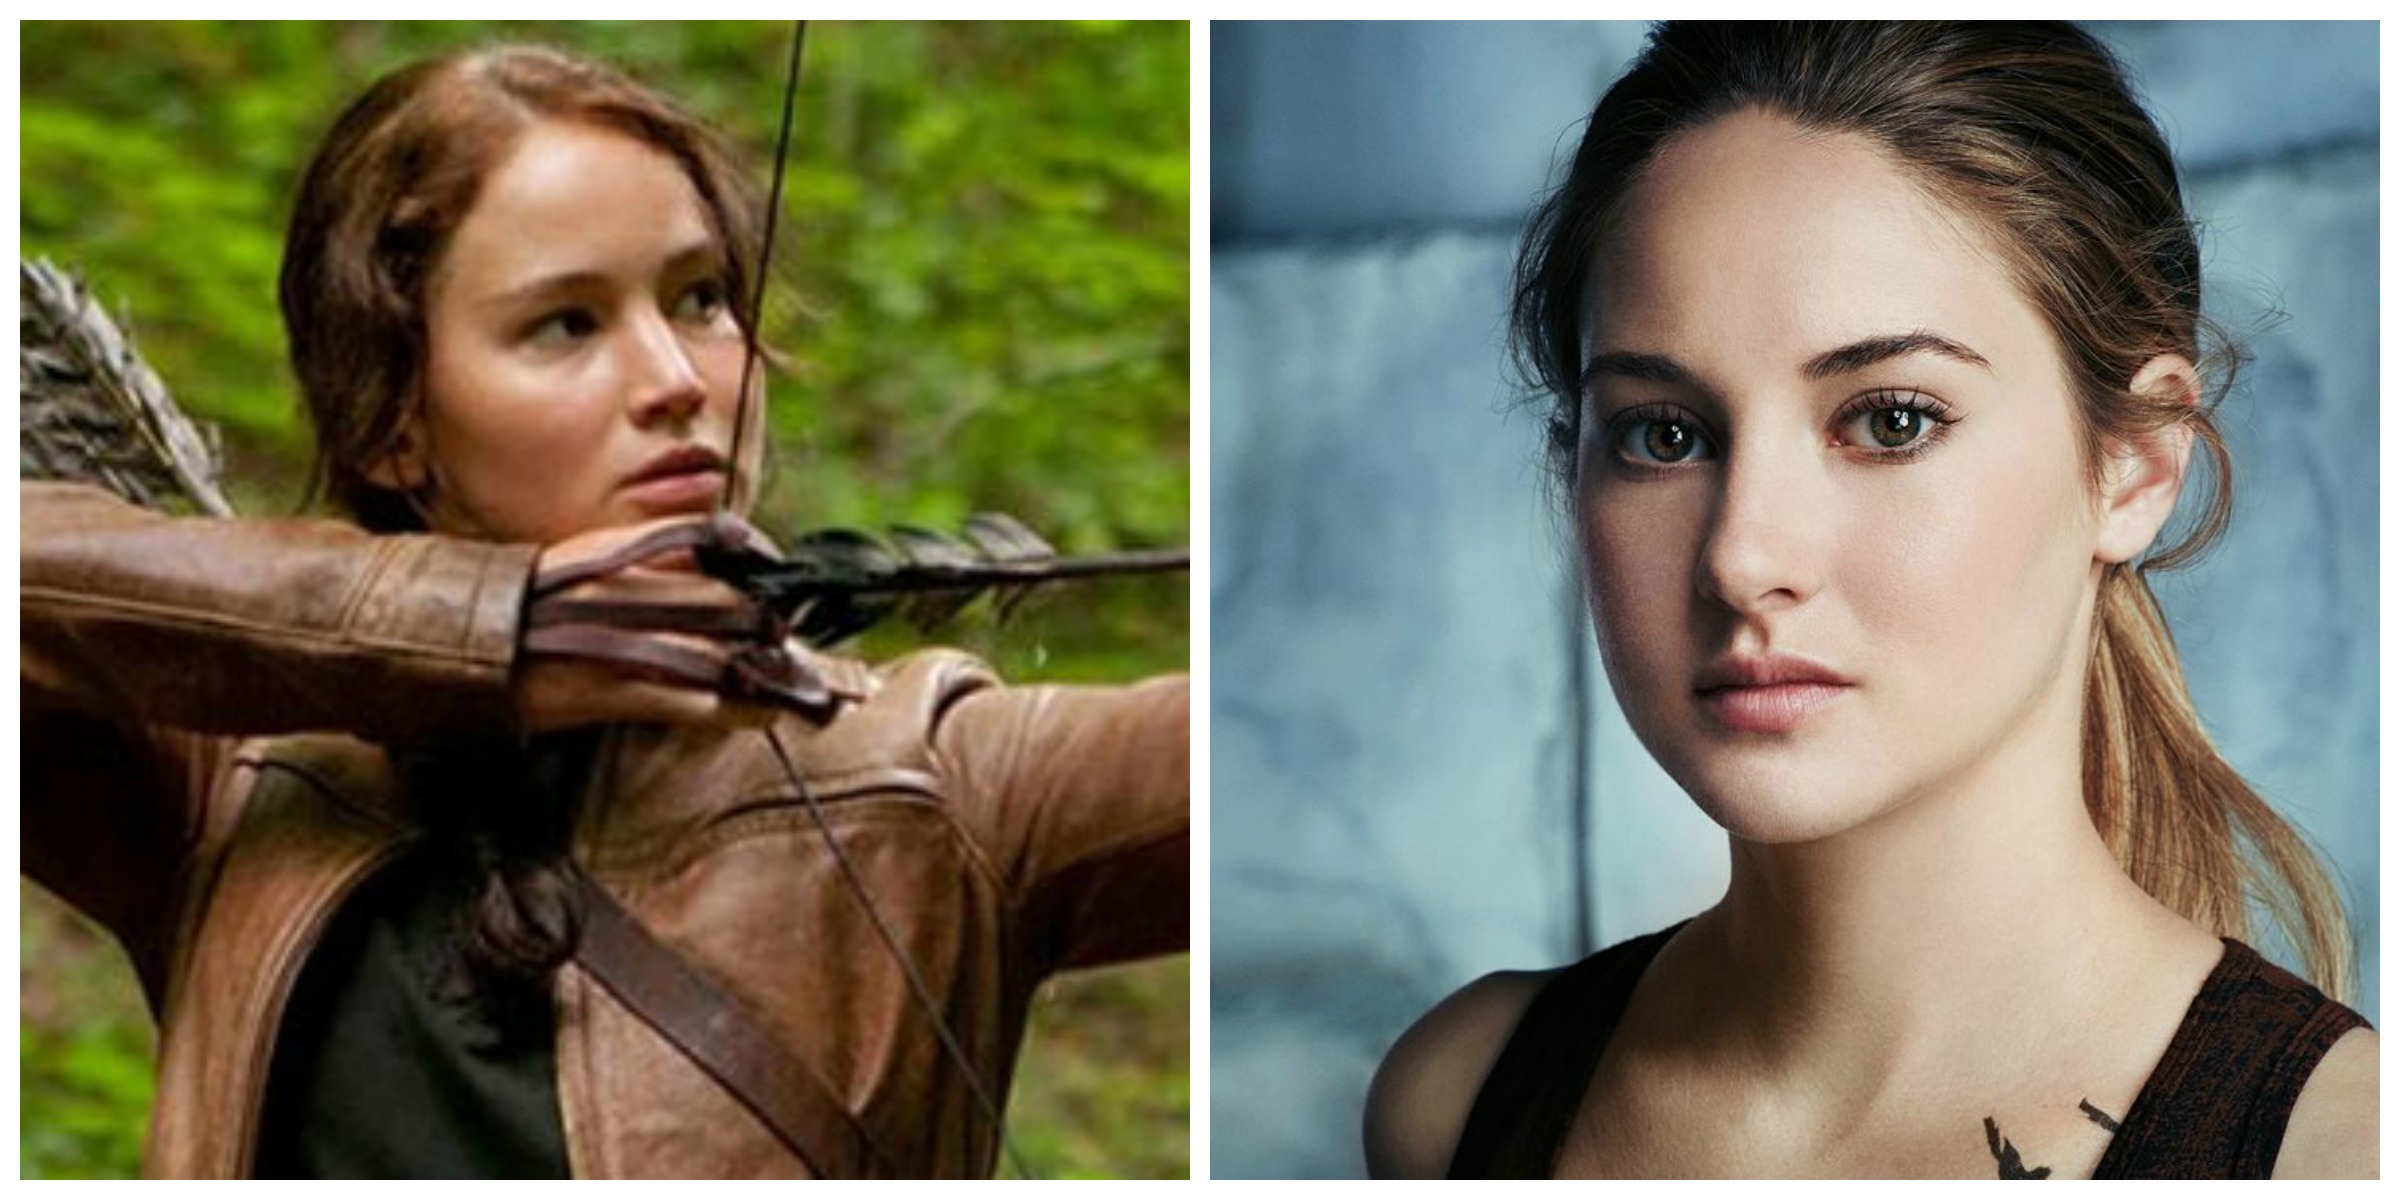 See that right there? Katniss takes aim, Tris looks pensive. KO, round 1.